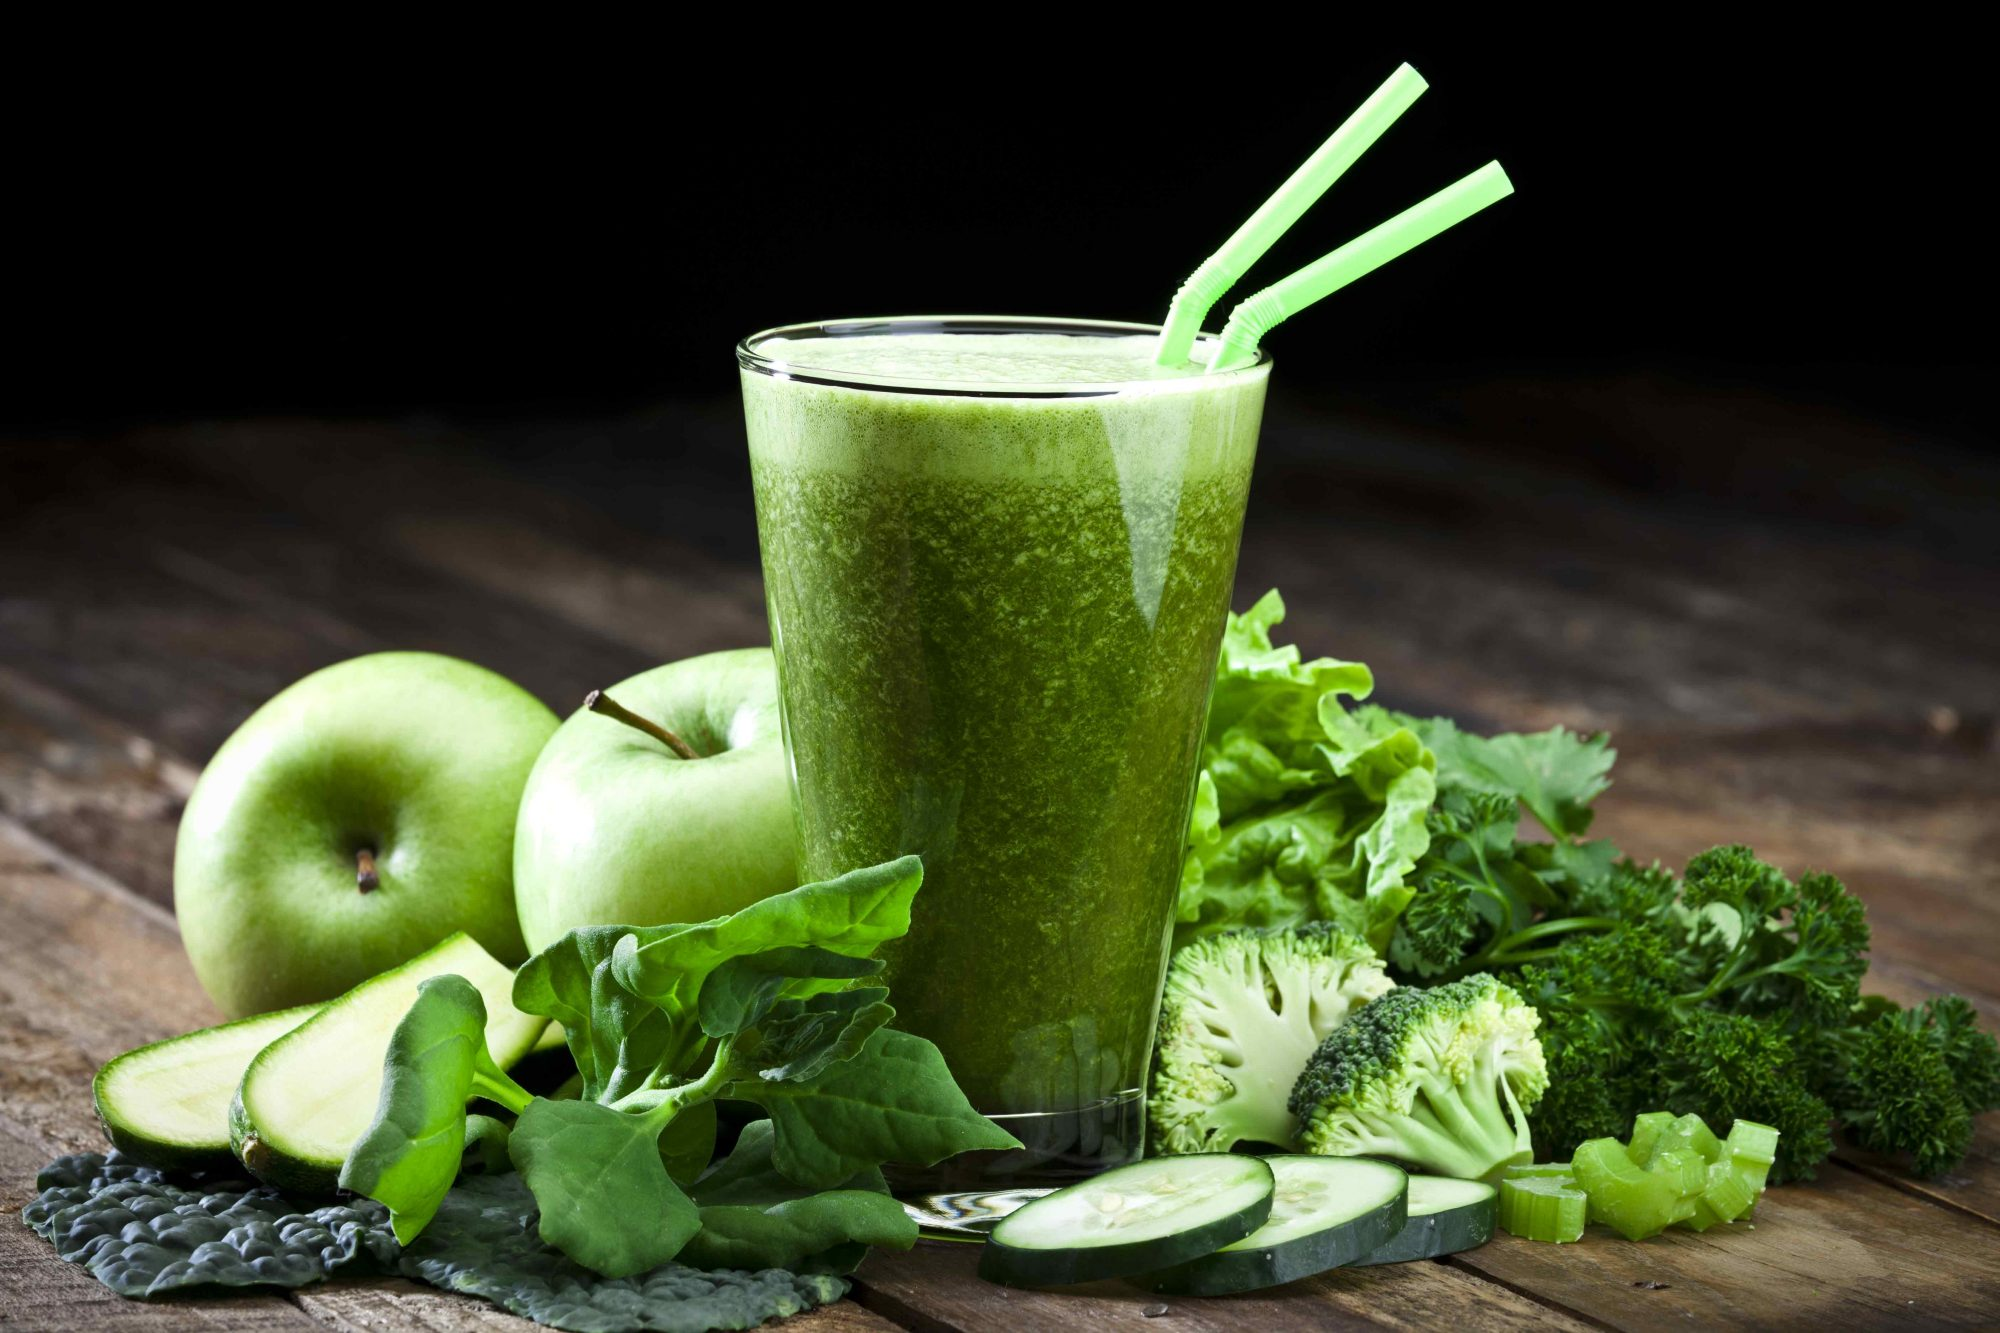 Green smoothie with ingredients